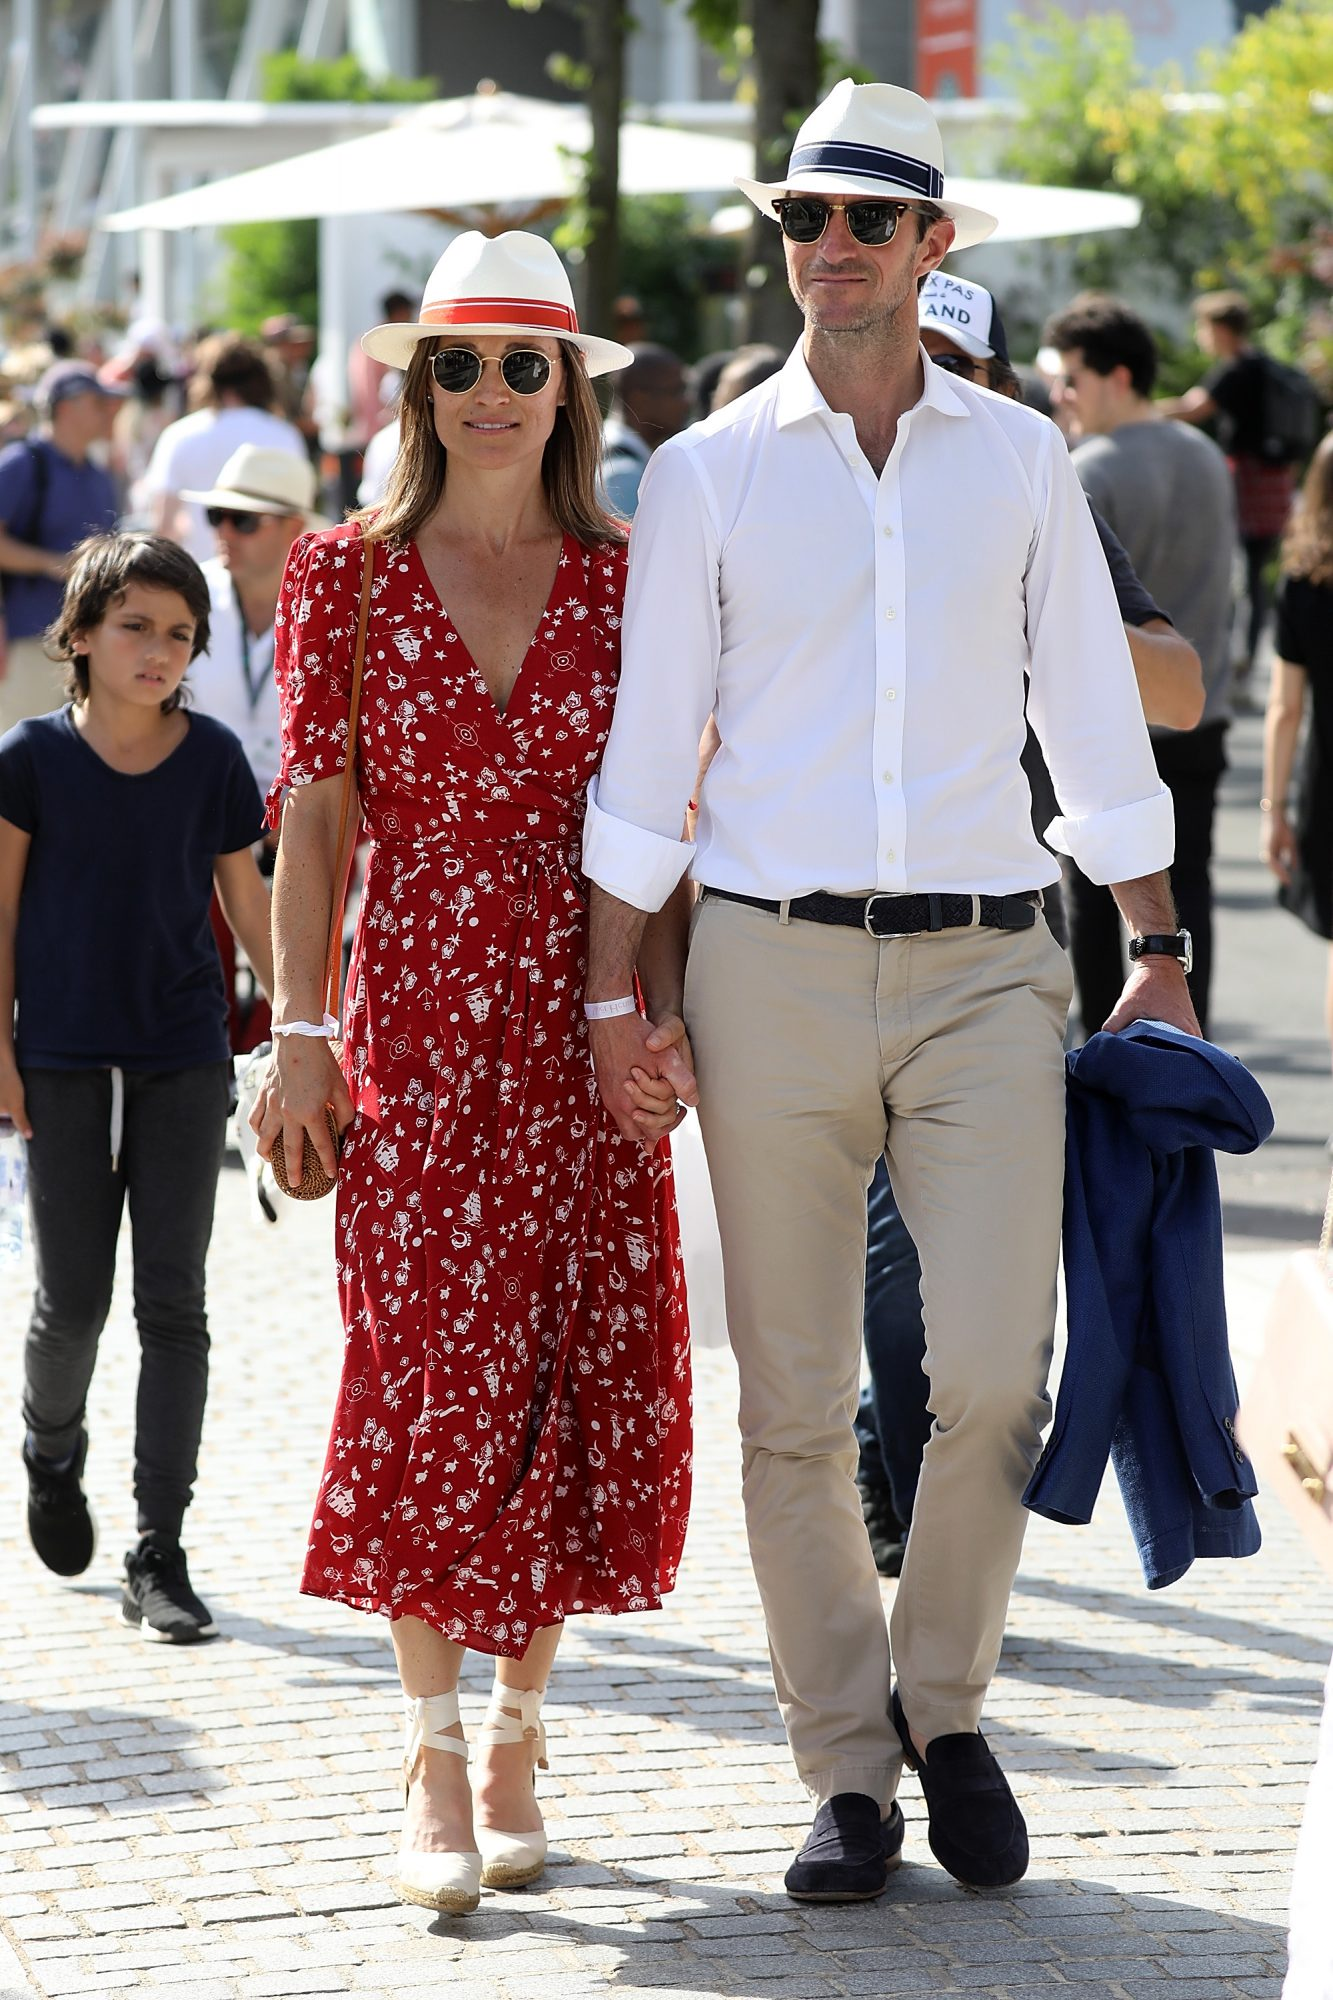 Pippa Middleton and her husband James Matthews are seen at the French Open